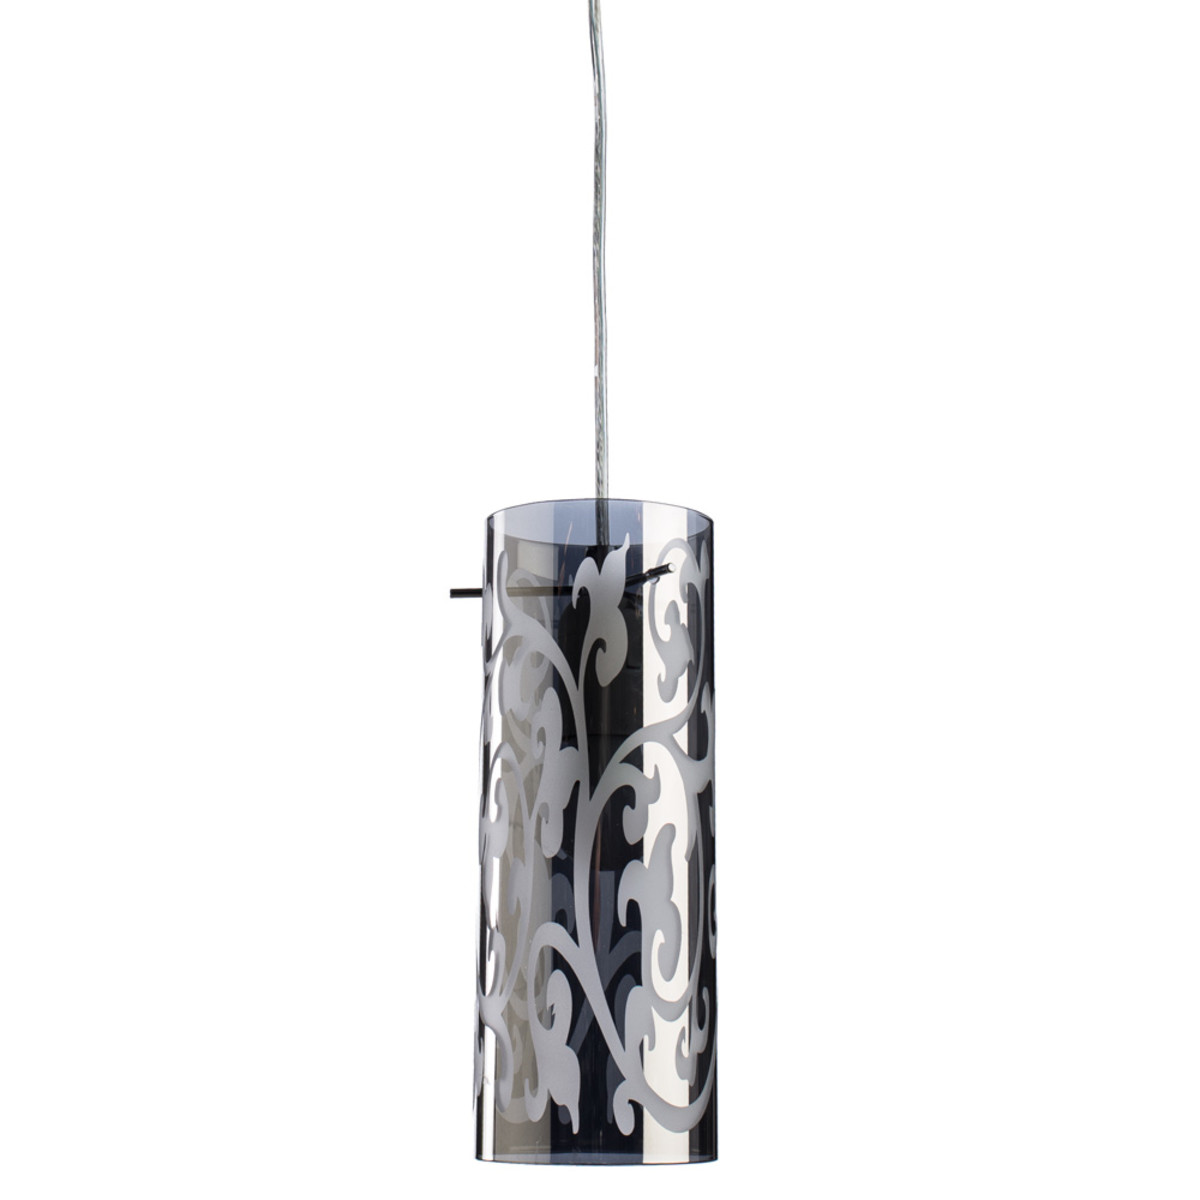 Люстра Arte Lamp Aries A9328SP-1CC E27 1 лампа